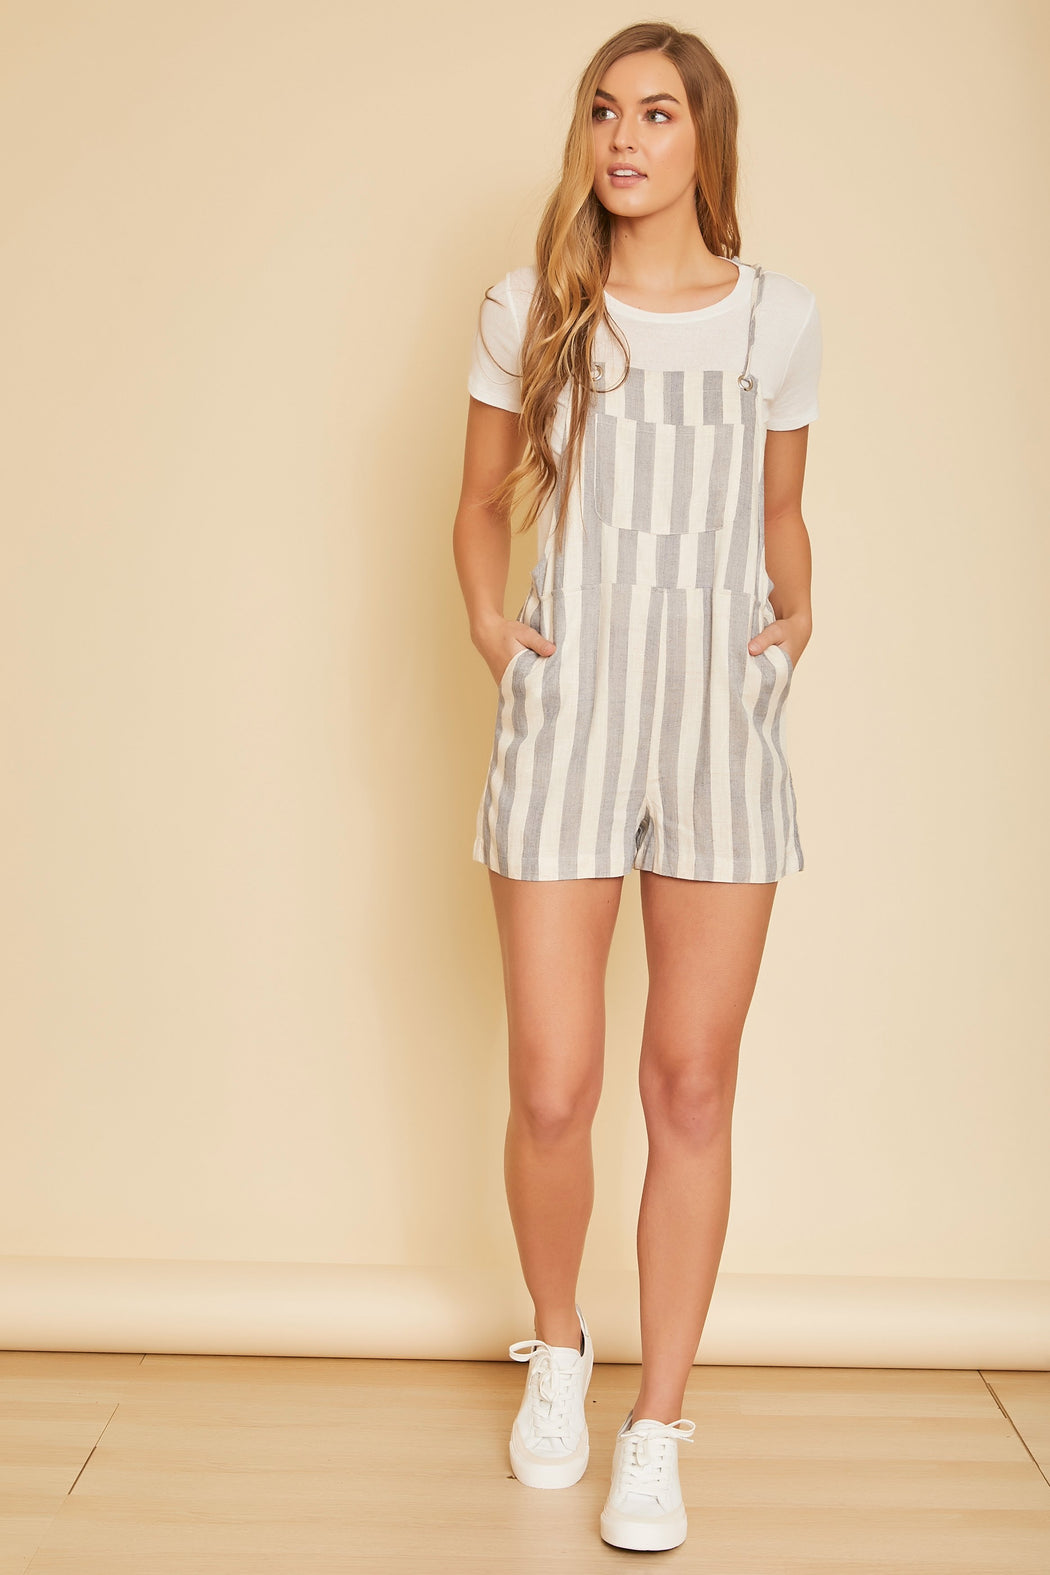 Riviera Striped Playsuit - wearNYLA